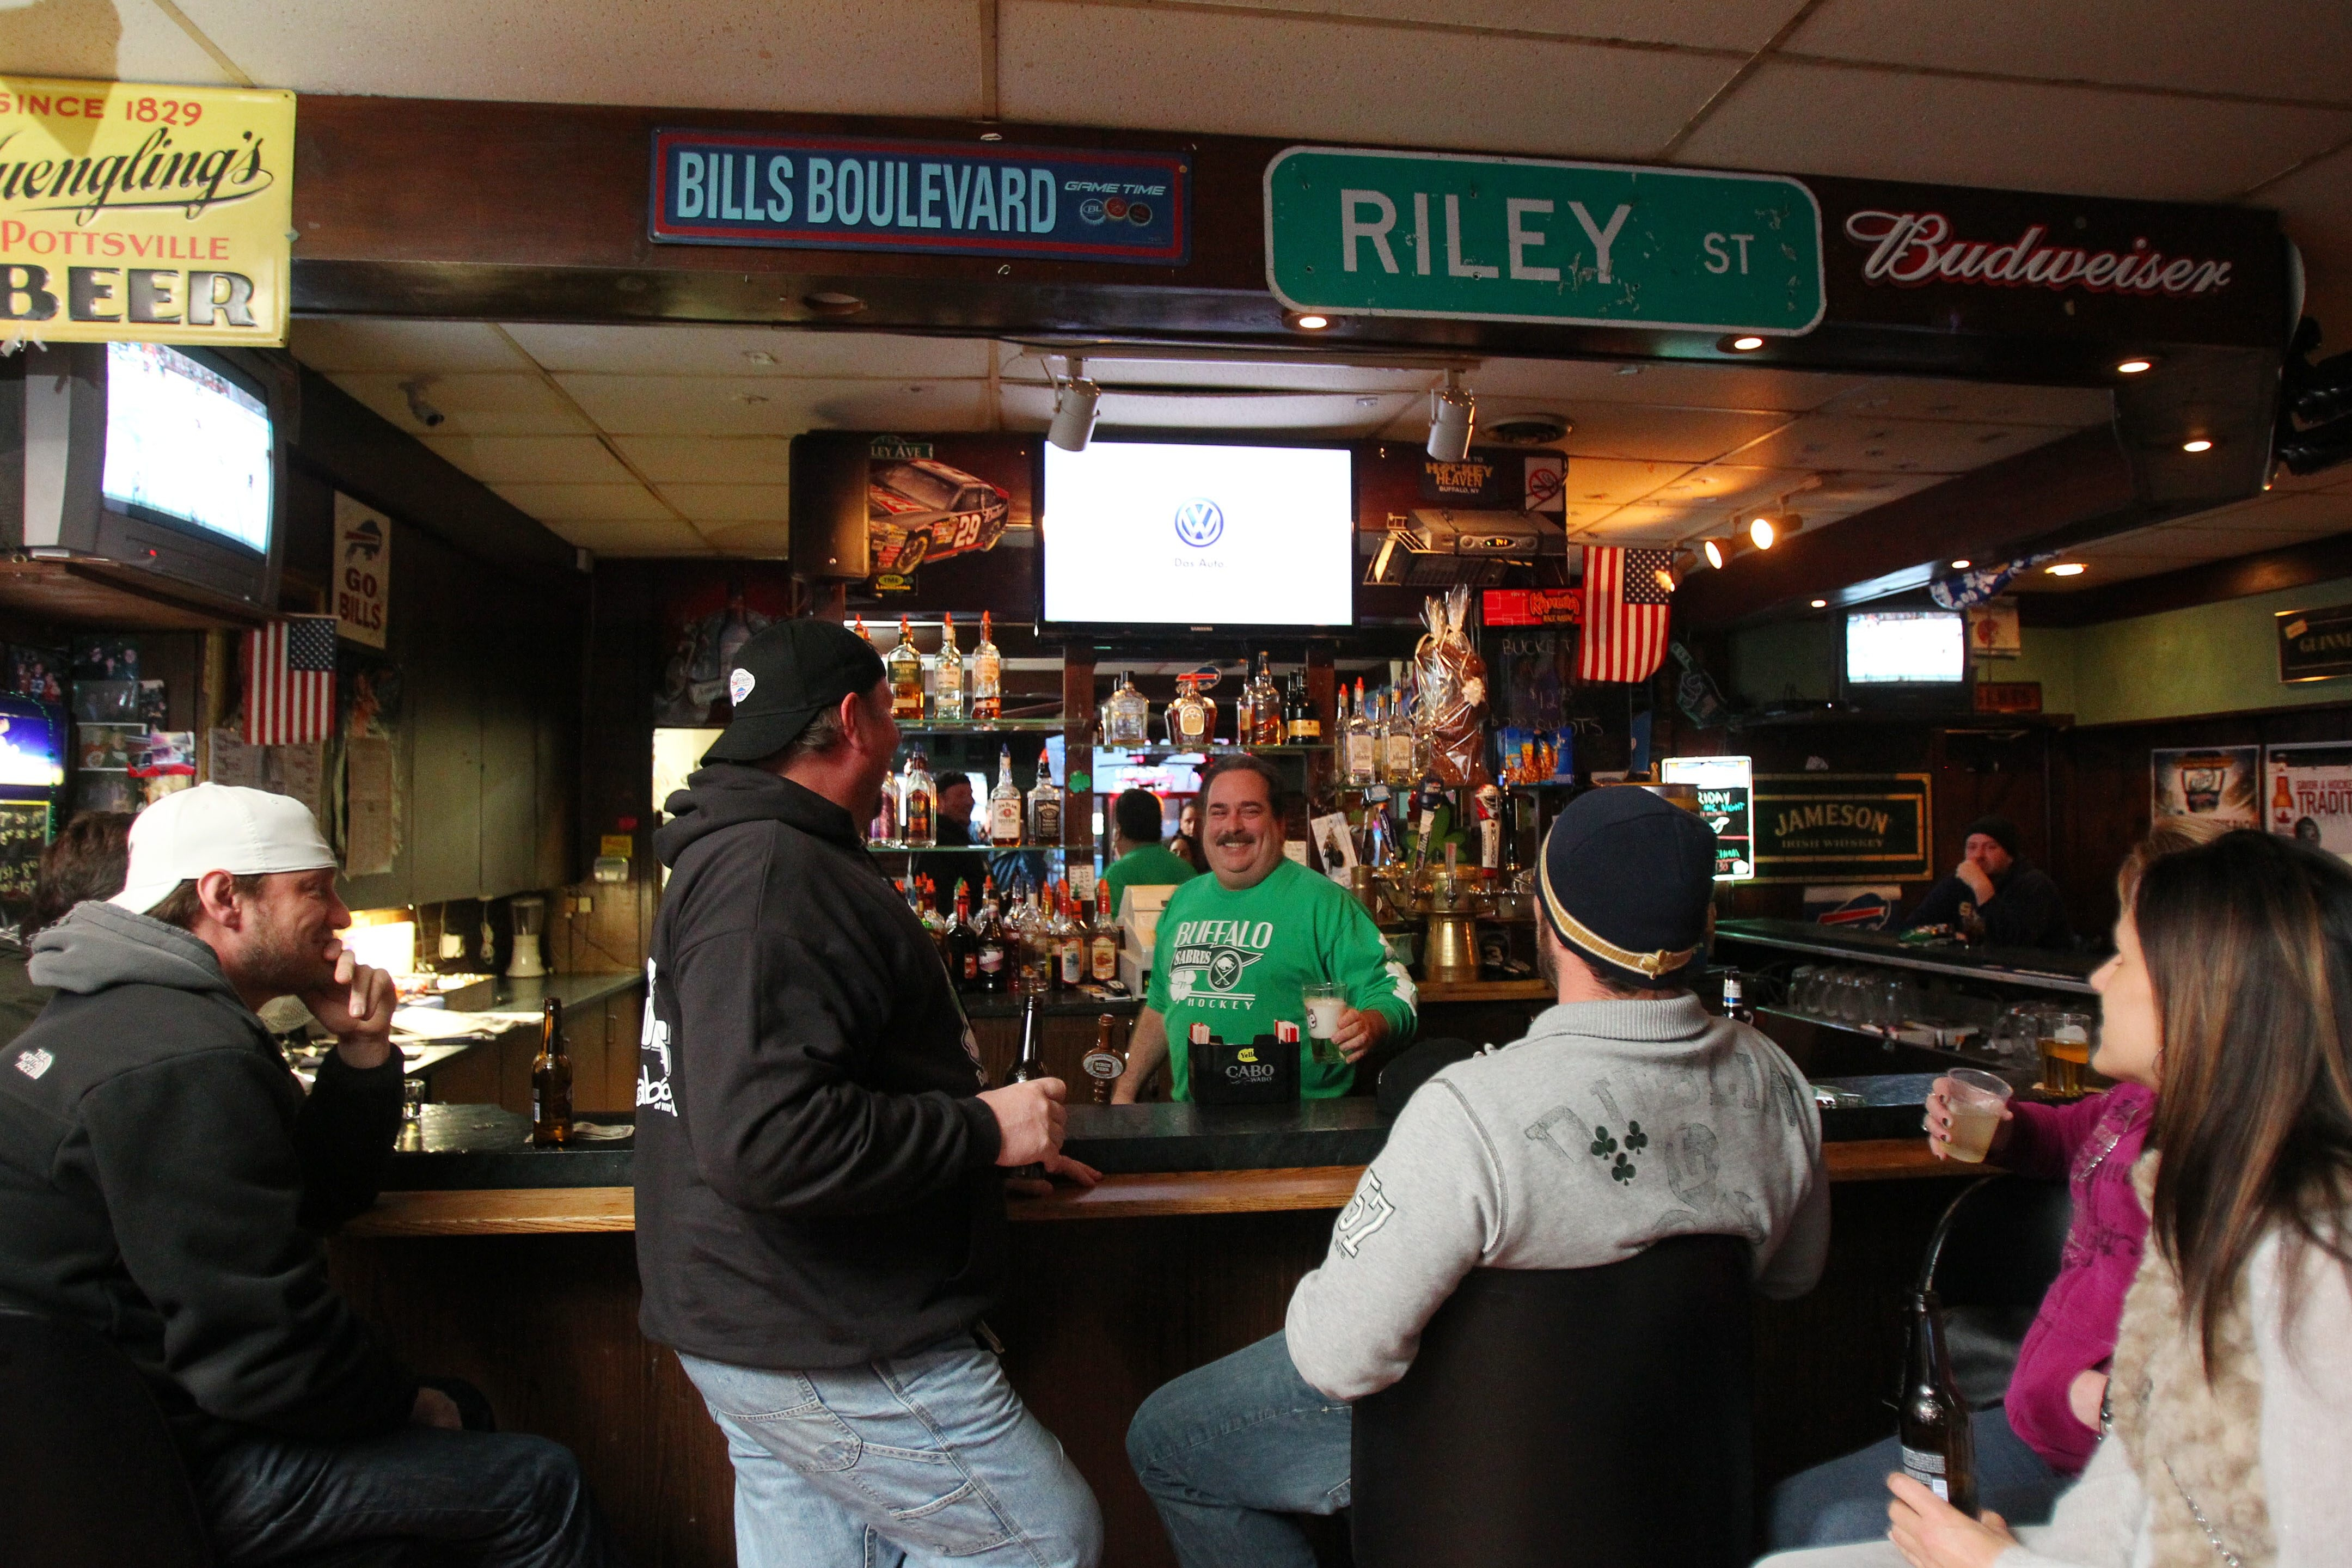 Folks enjoy some drinks and the laid-back atmosphere at Riley's Lounge in West Seneca. Serving up beverages behind the bar is Larry Dempsey.